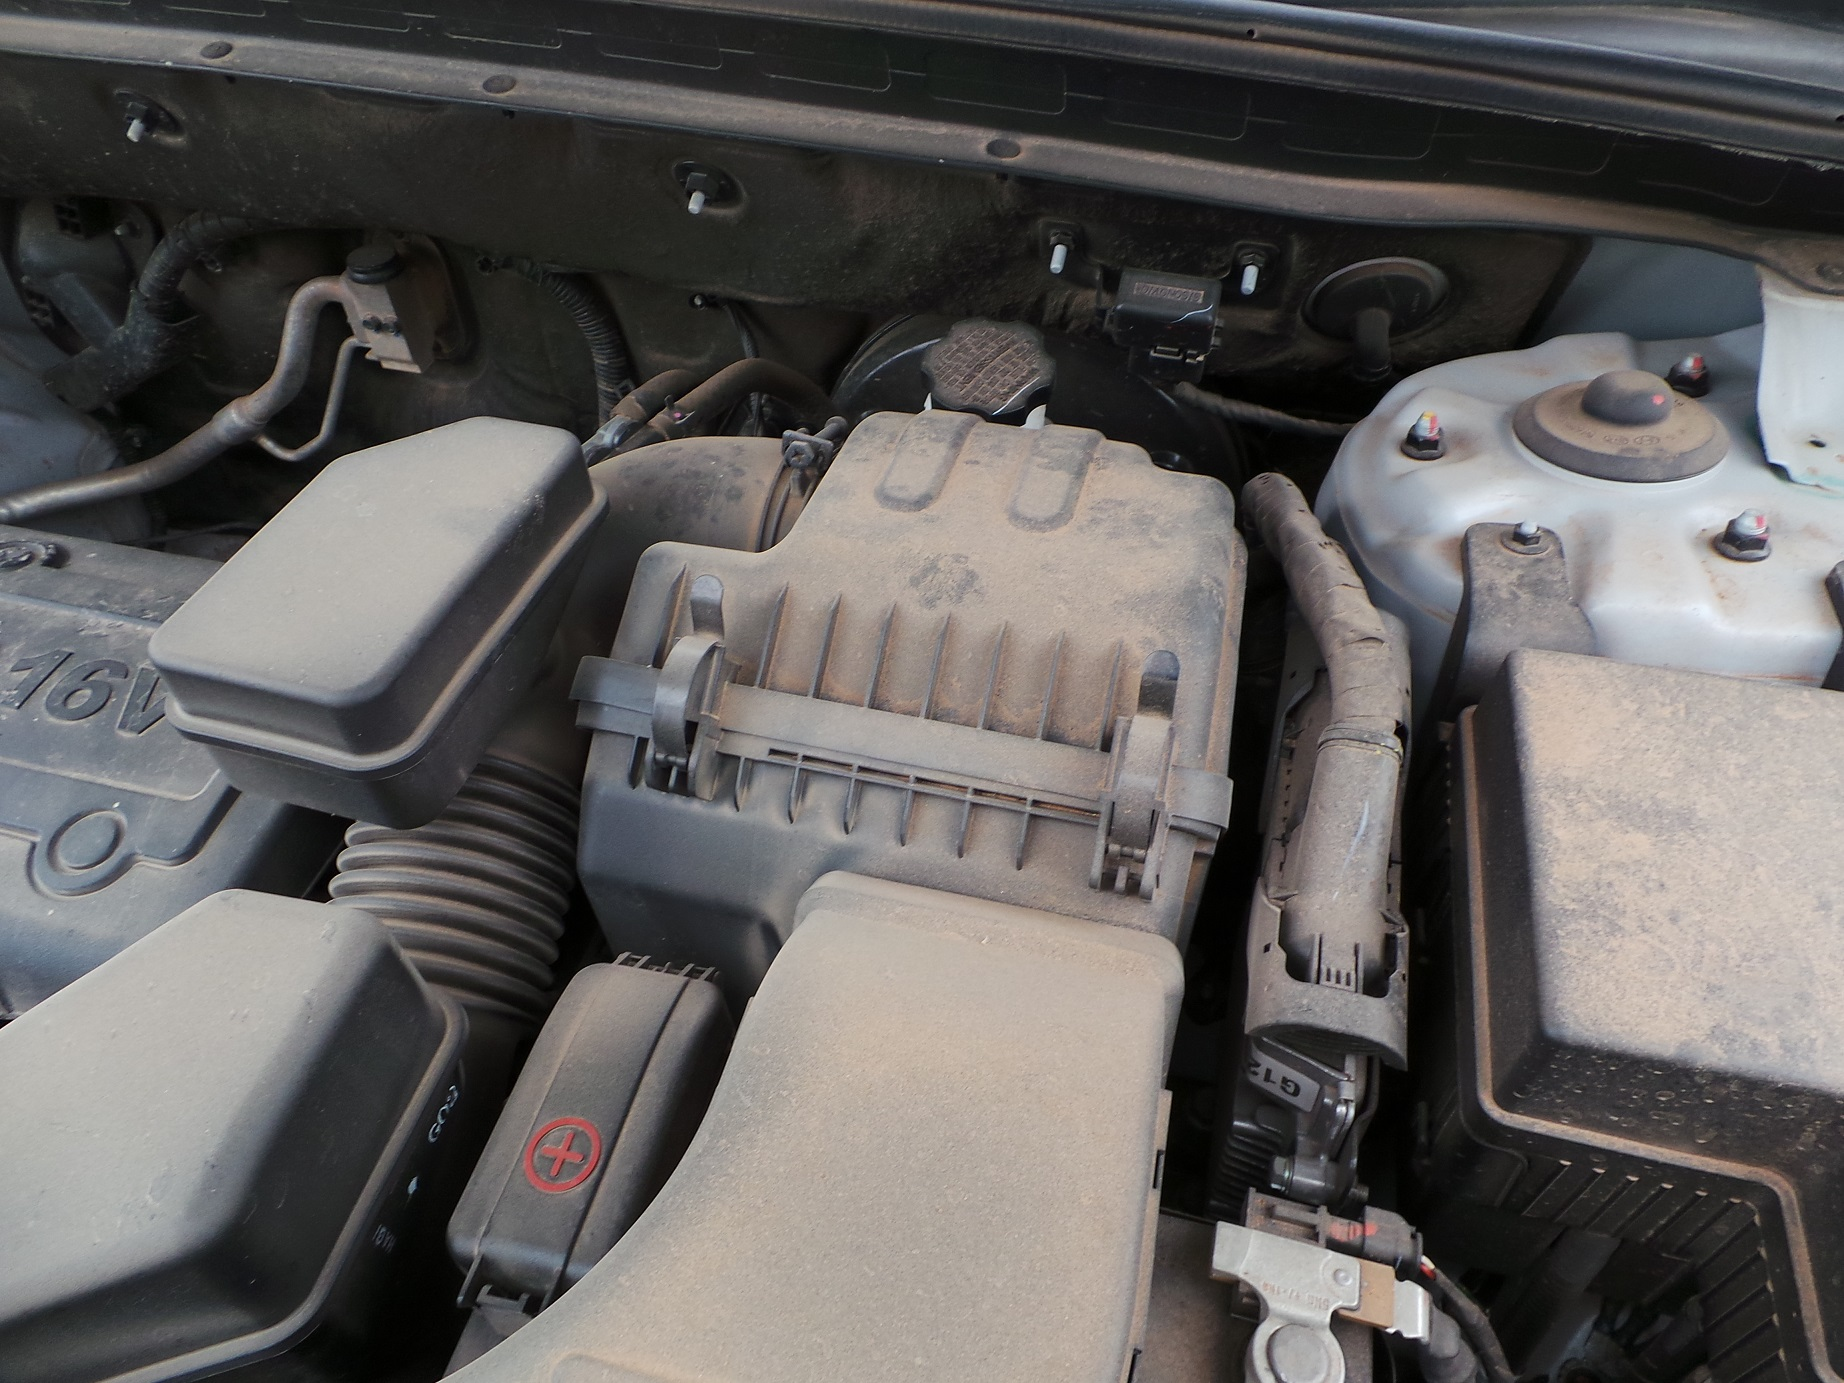 This is a typical airbox. This particular vehicle is a 2003 Chevrolet Silverado.